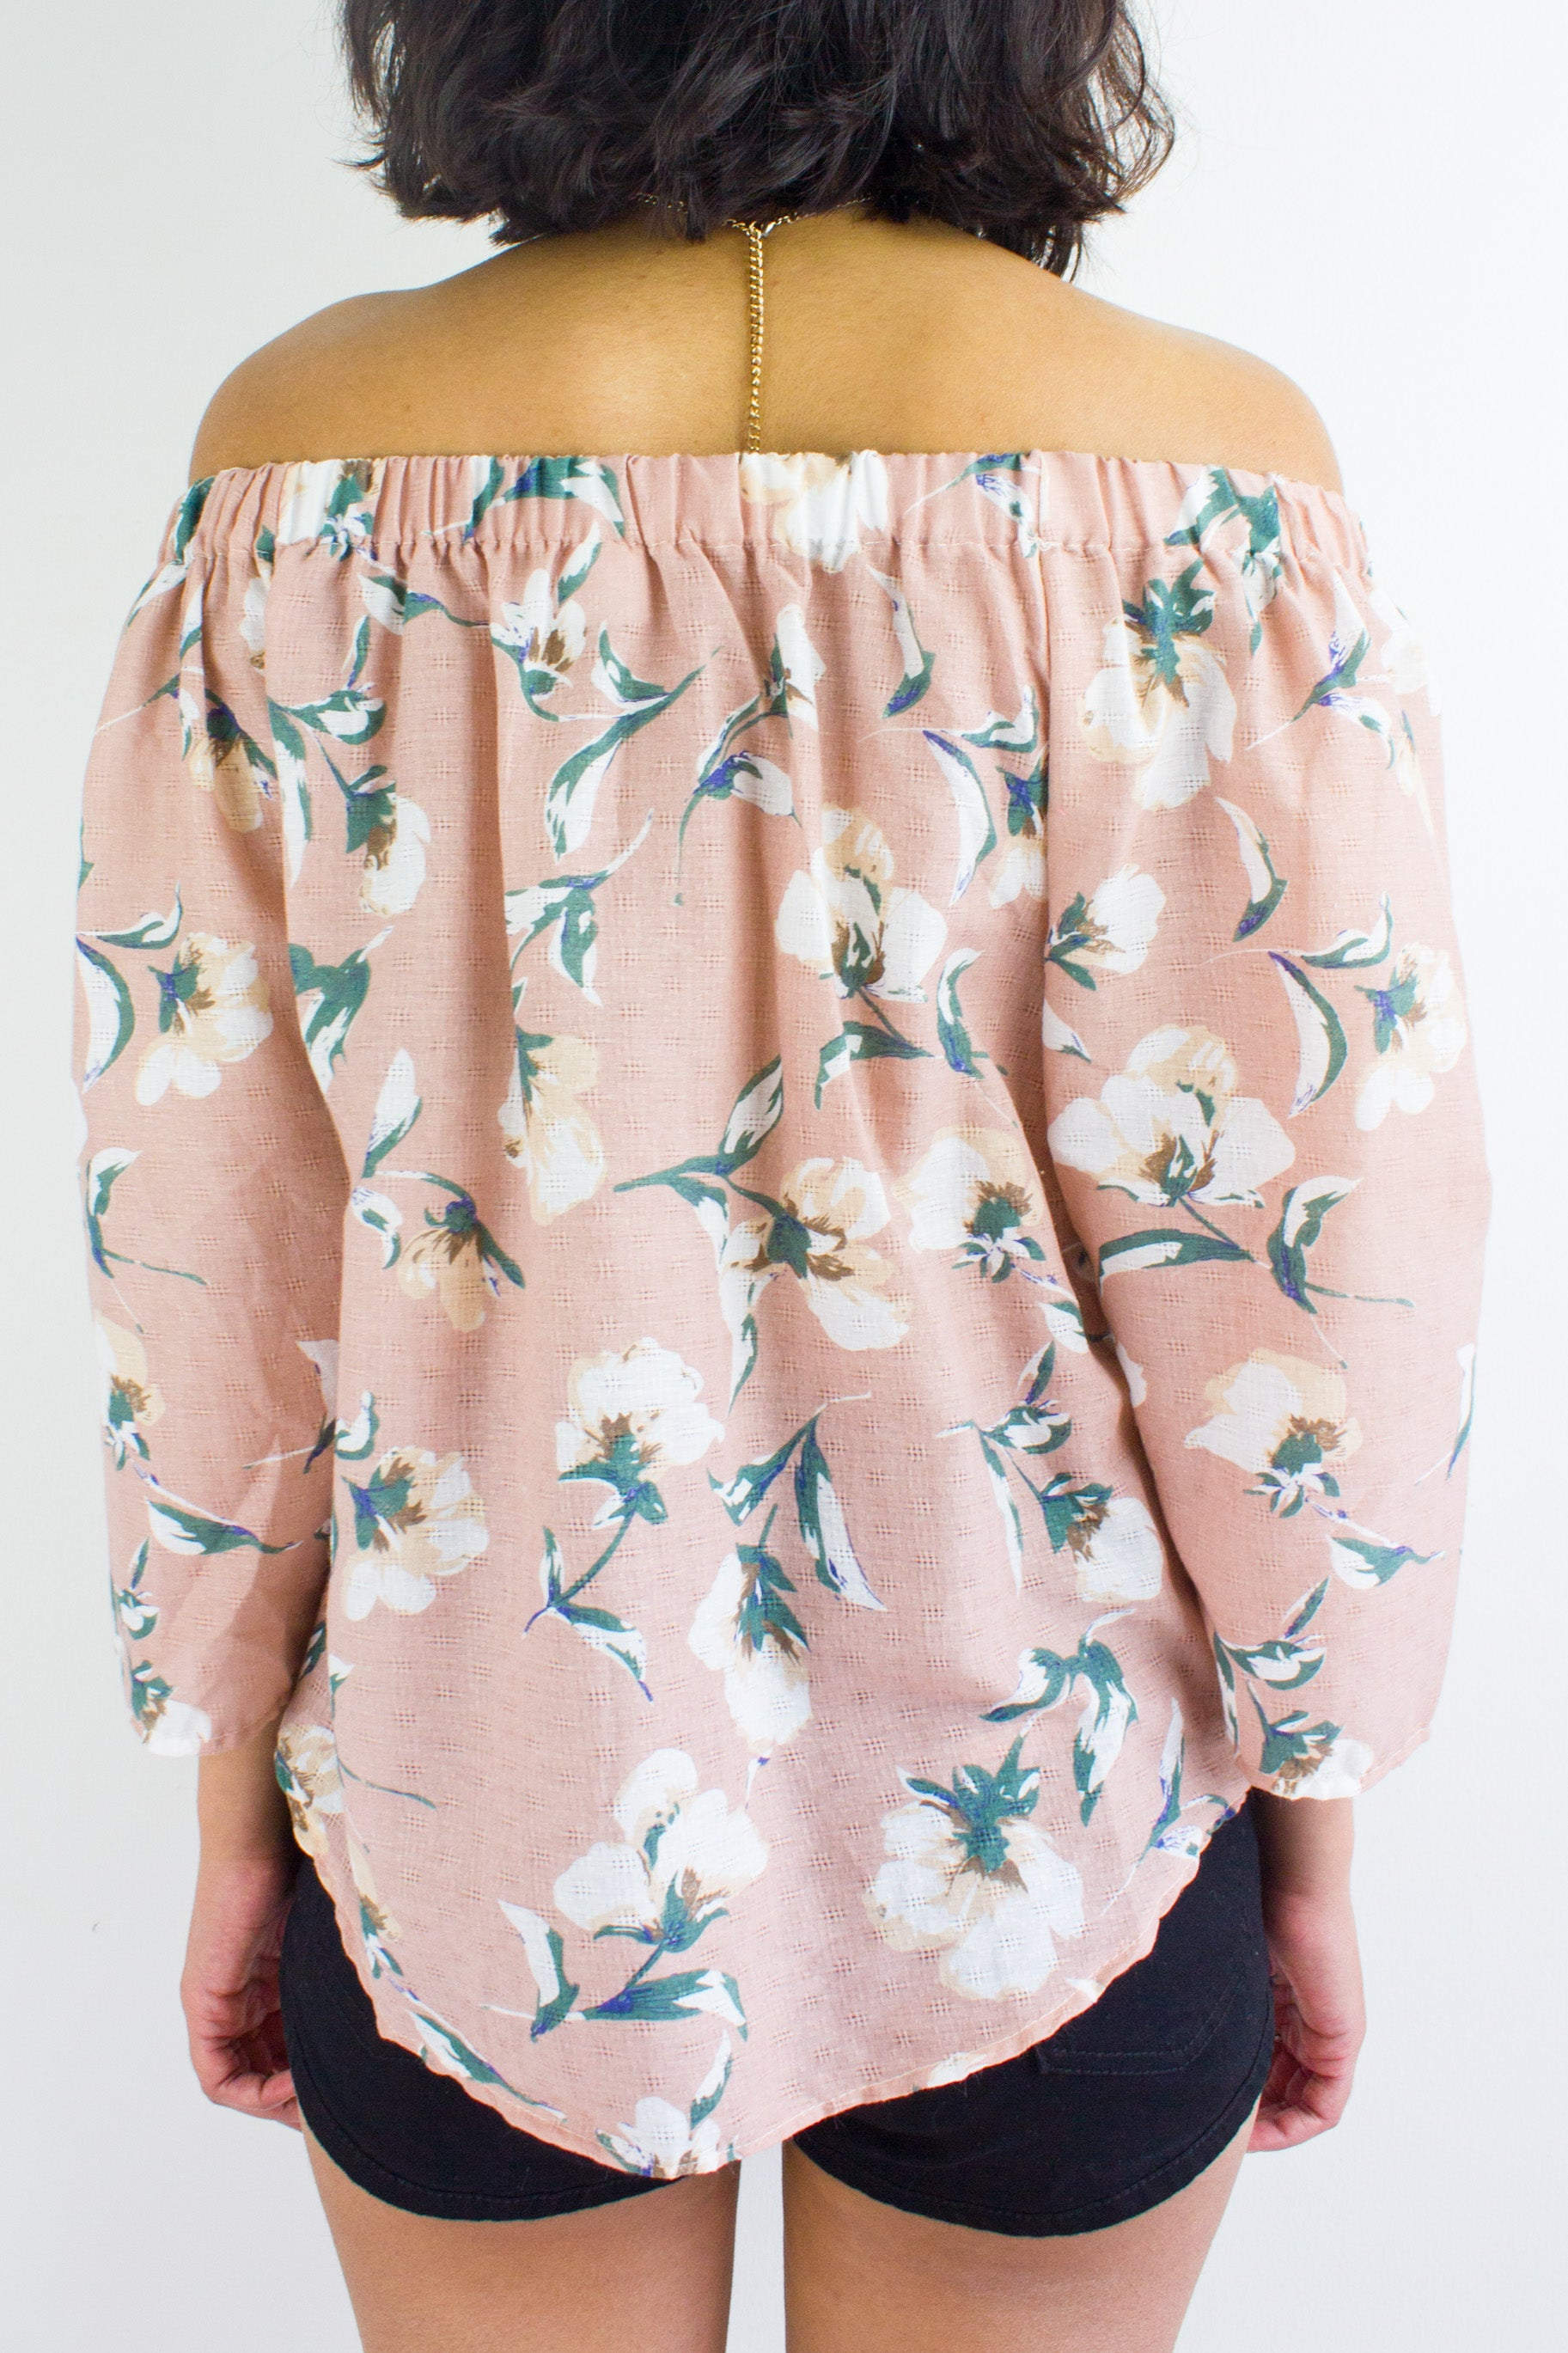 Summertime Sadness Floral Top in Dusty Pink